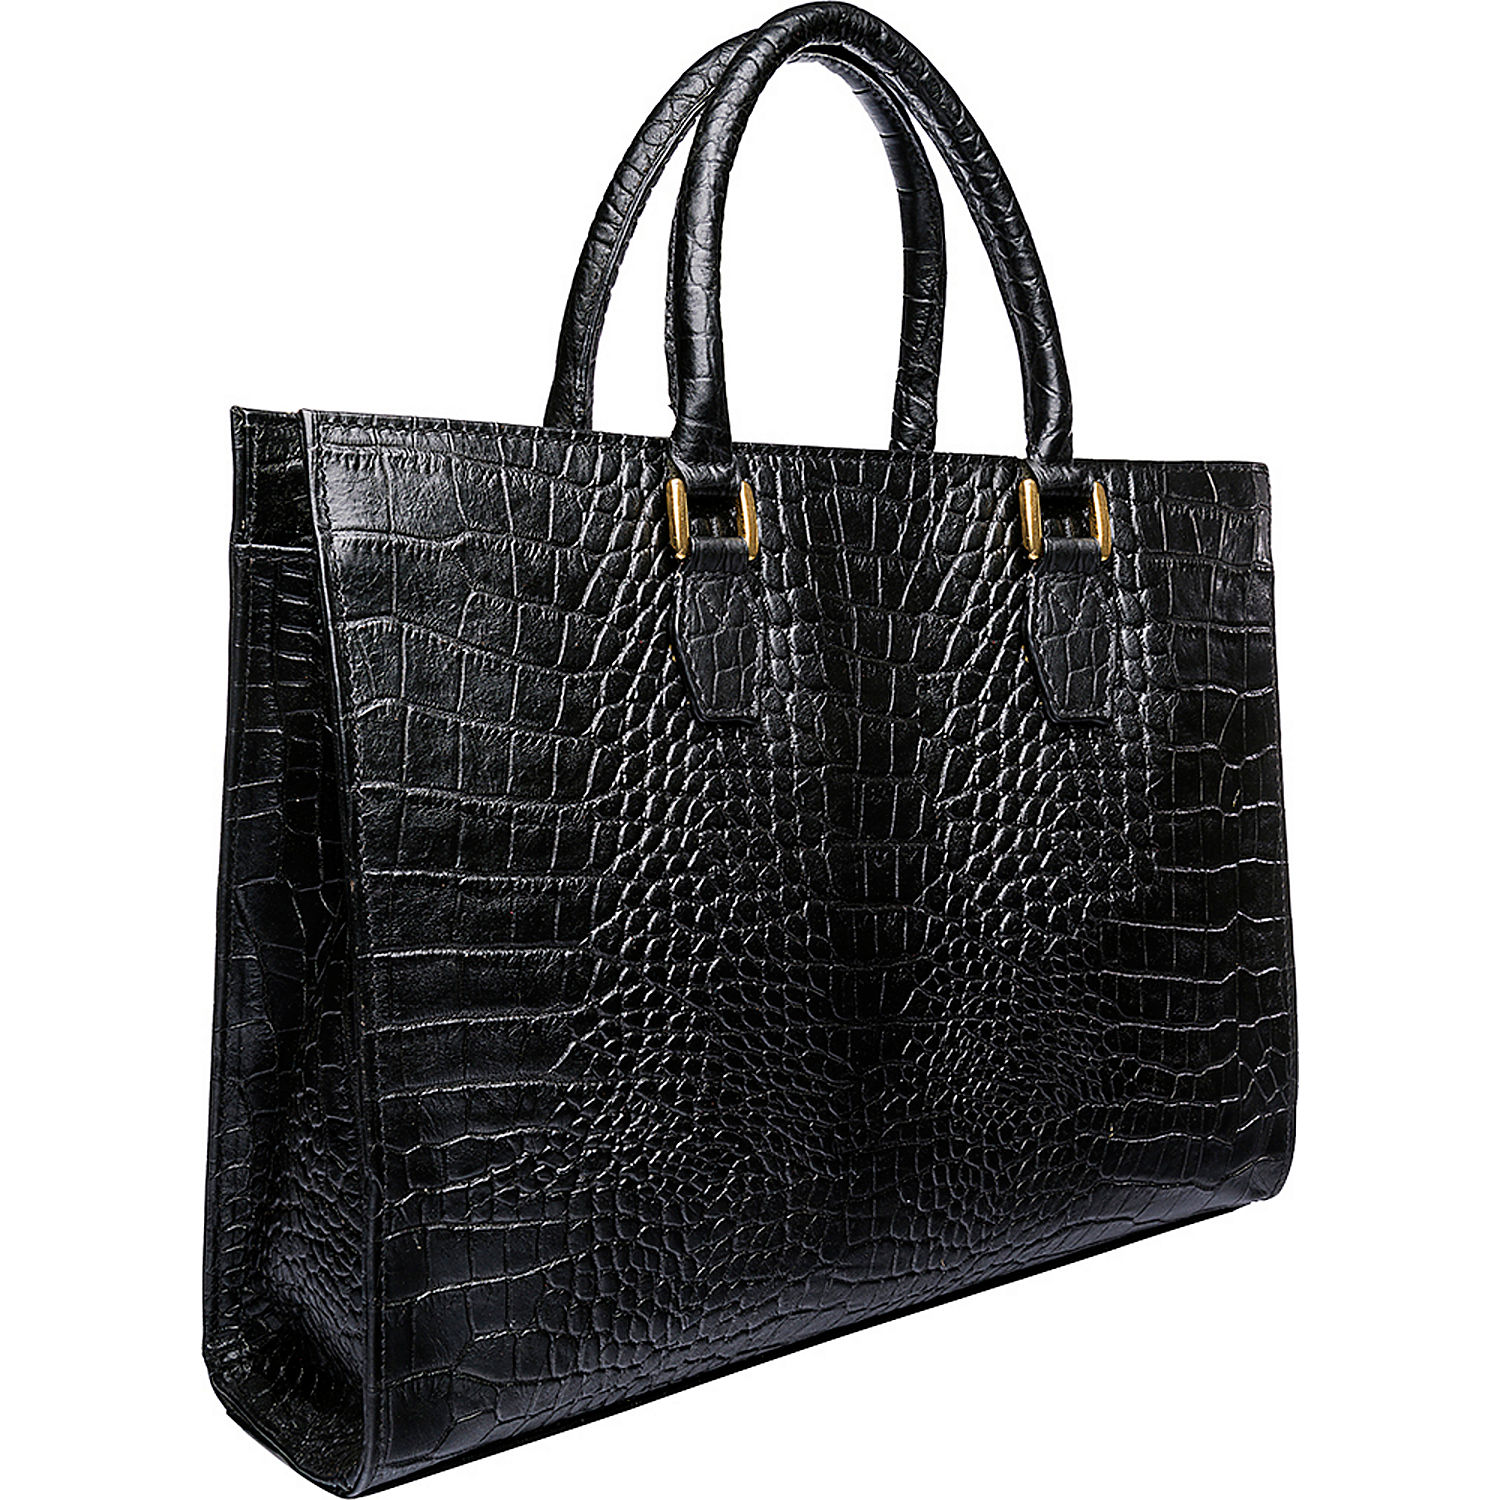 Shop Women's Business Bags & Work Bags At archivesnapug.cf Enjoy Free Shipping & Returns On All Orders.